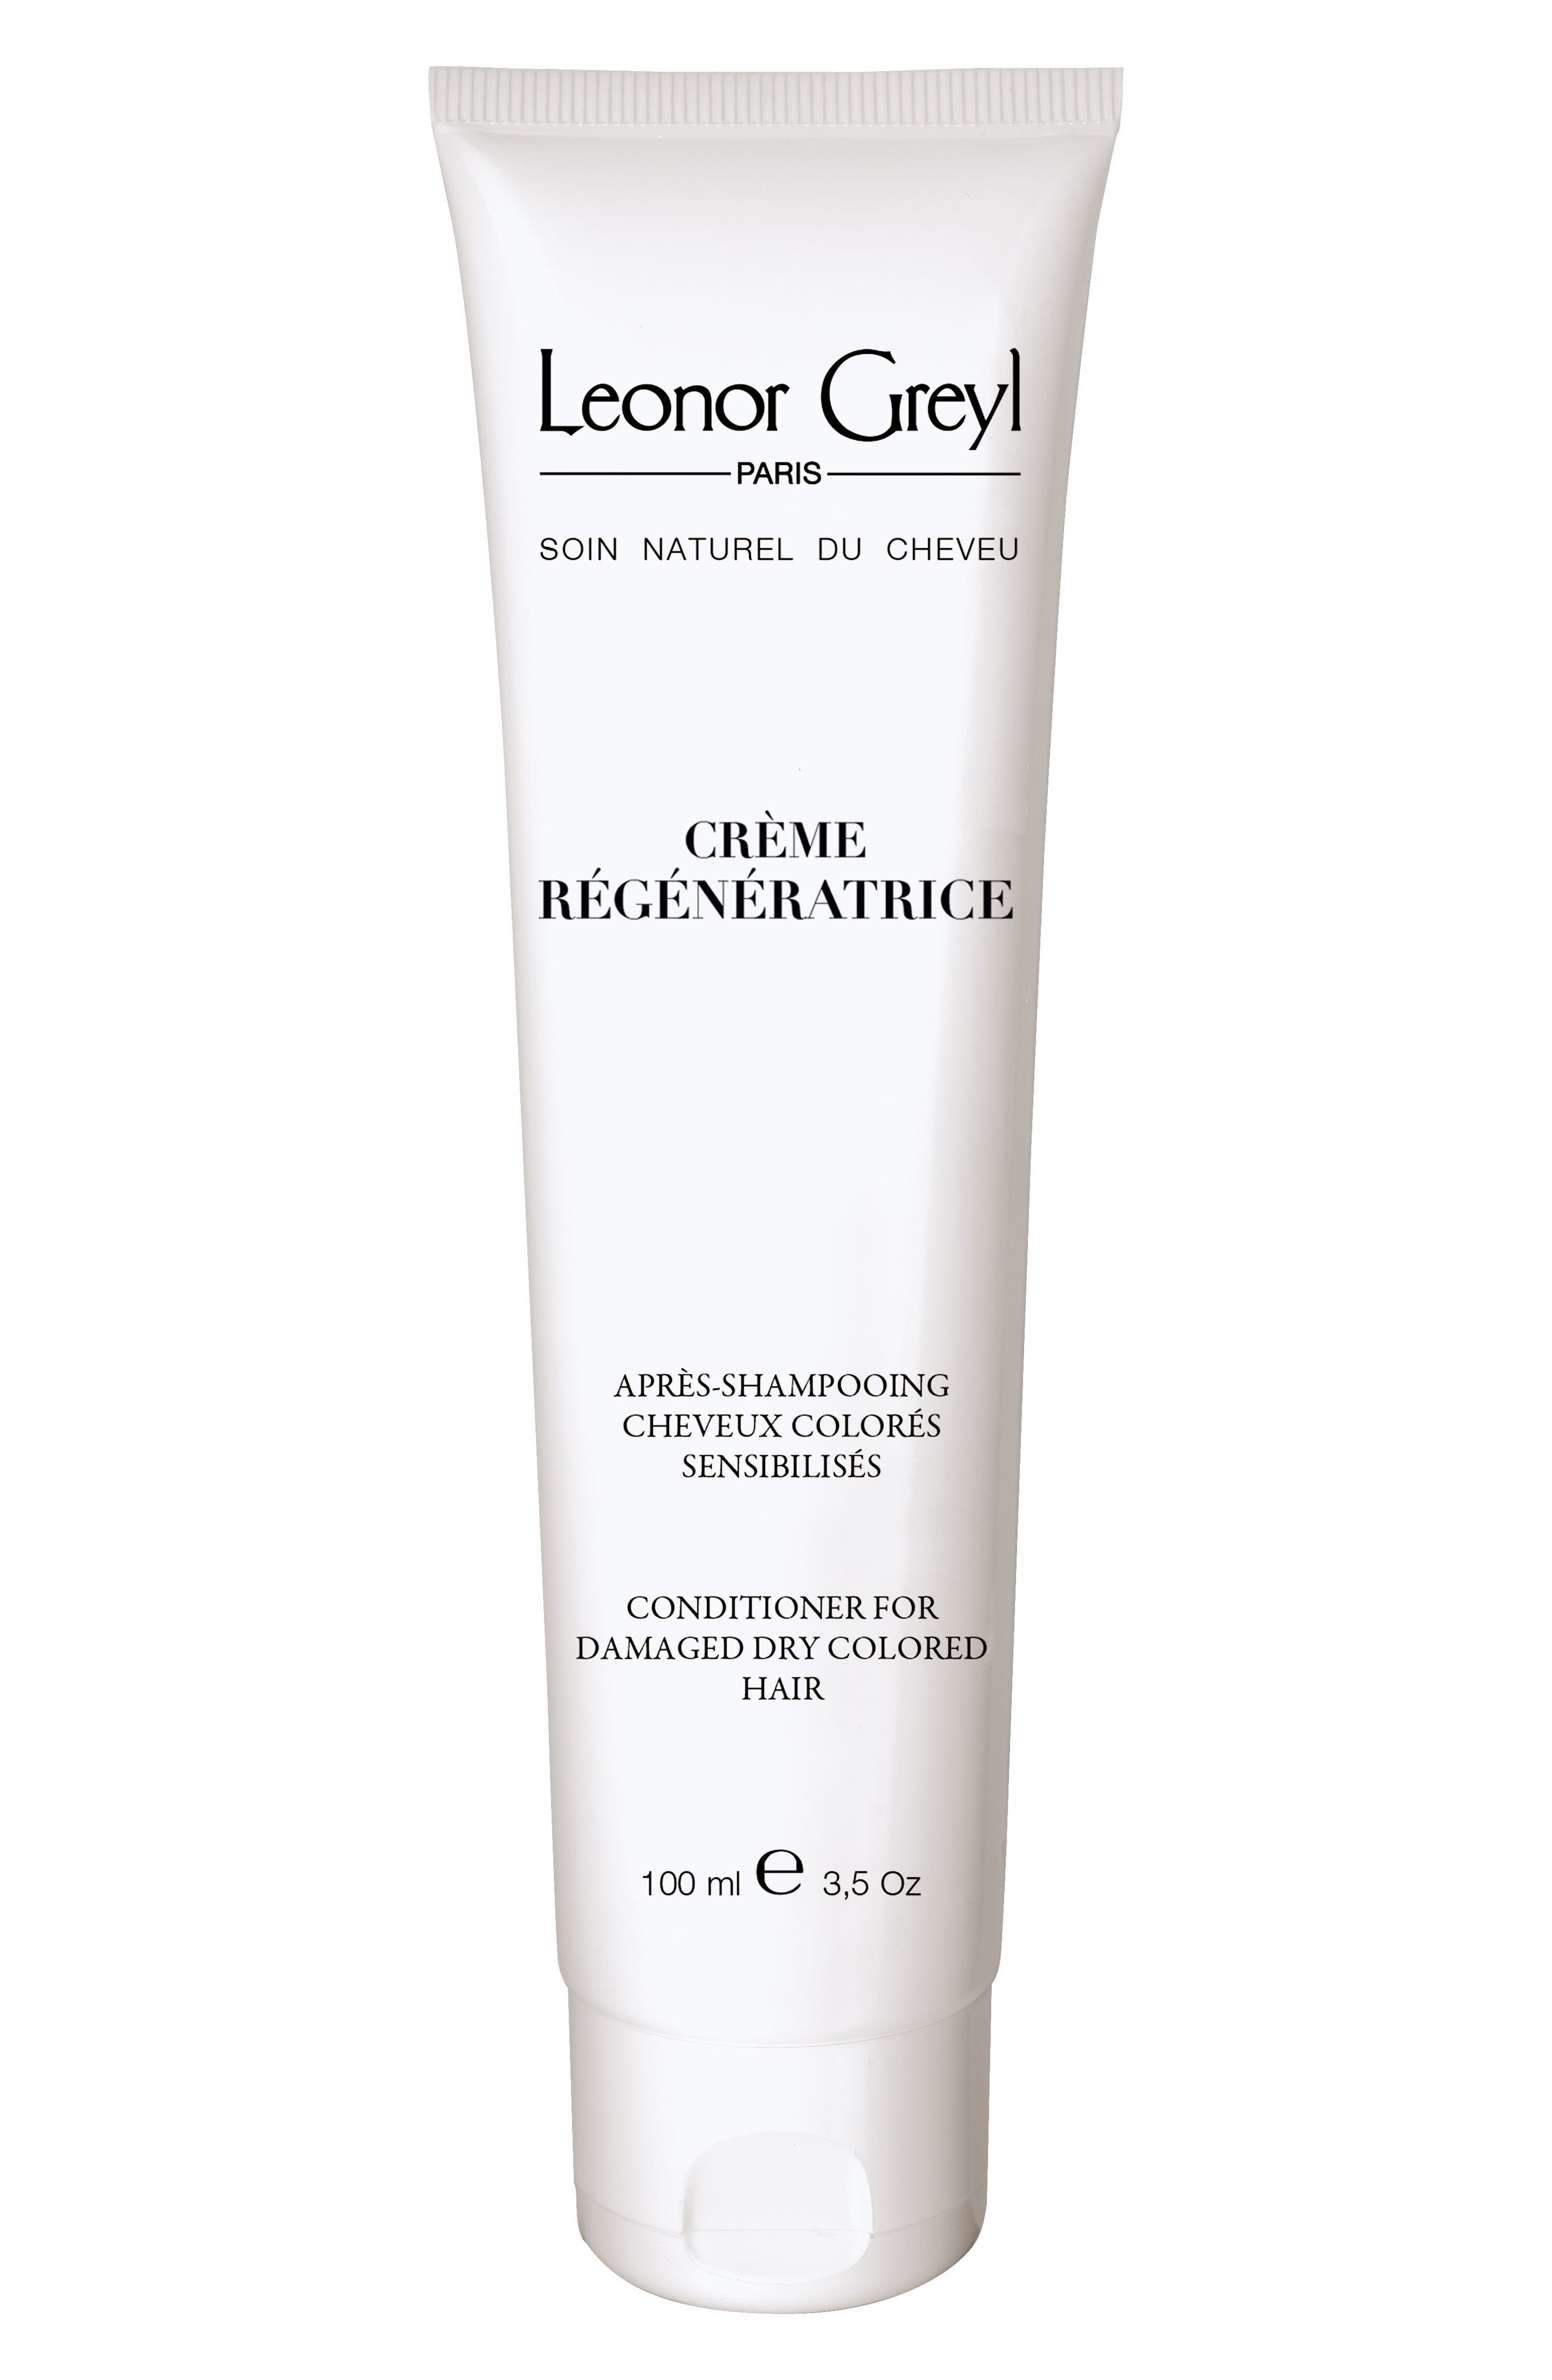 LEONOR GREYL Cr & #232Me Regeneratrice (Conditioner For Damaged, Dry, Colored Hair), 3.5 Oz./ 100 Ml